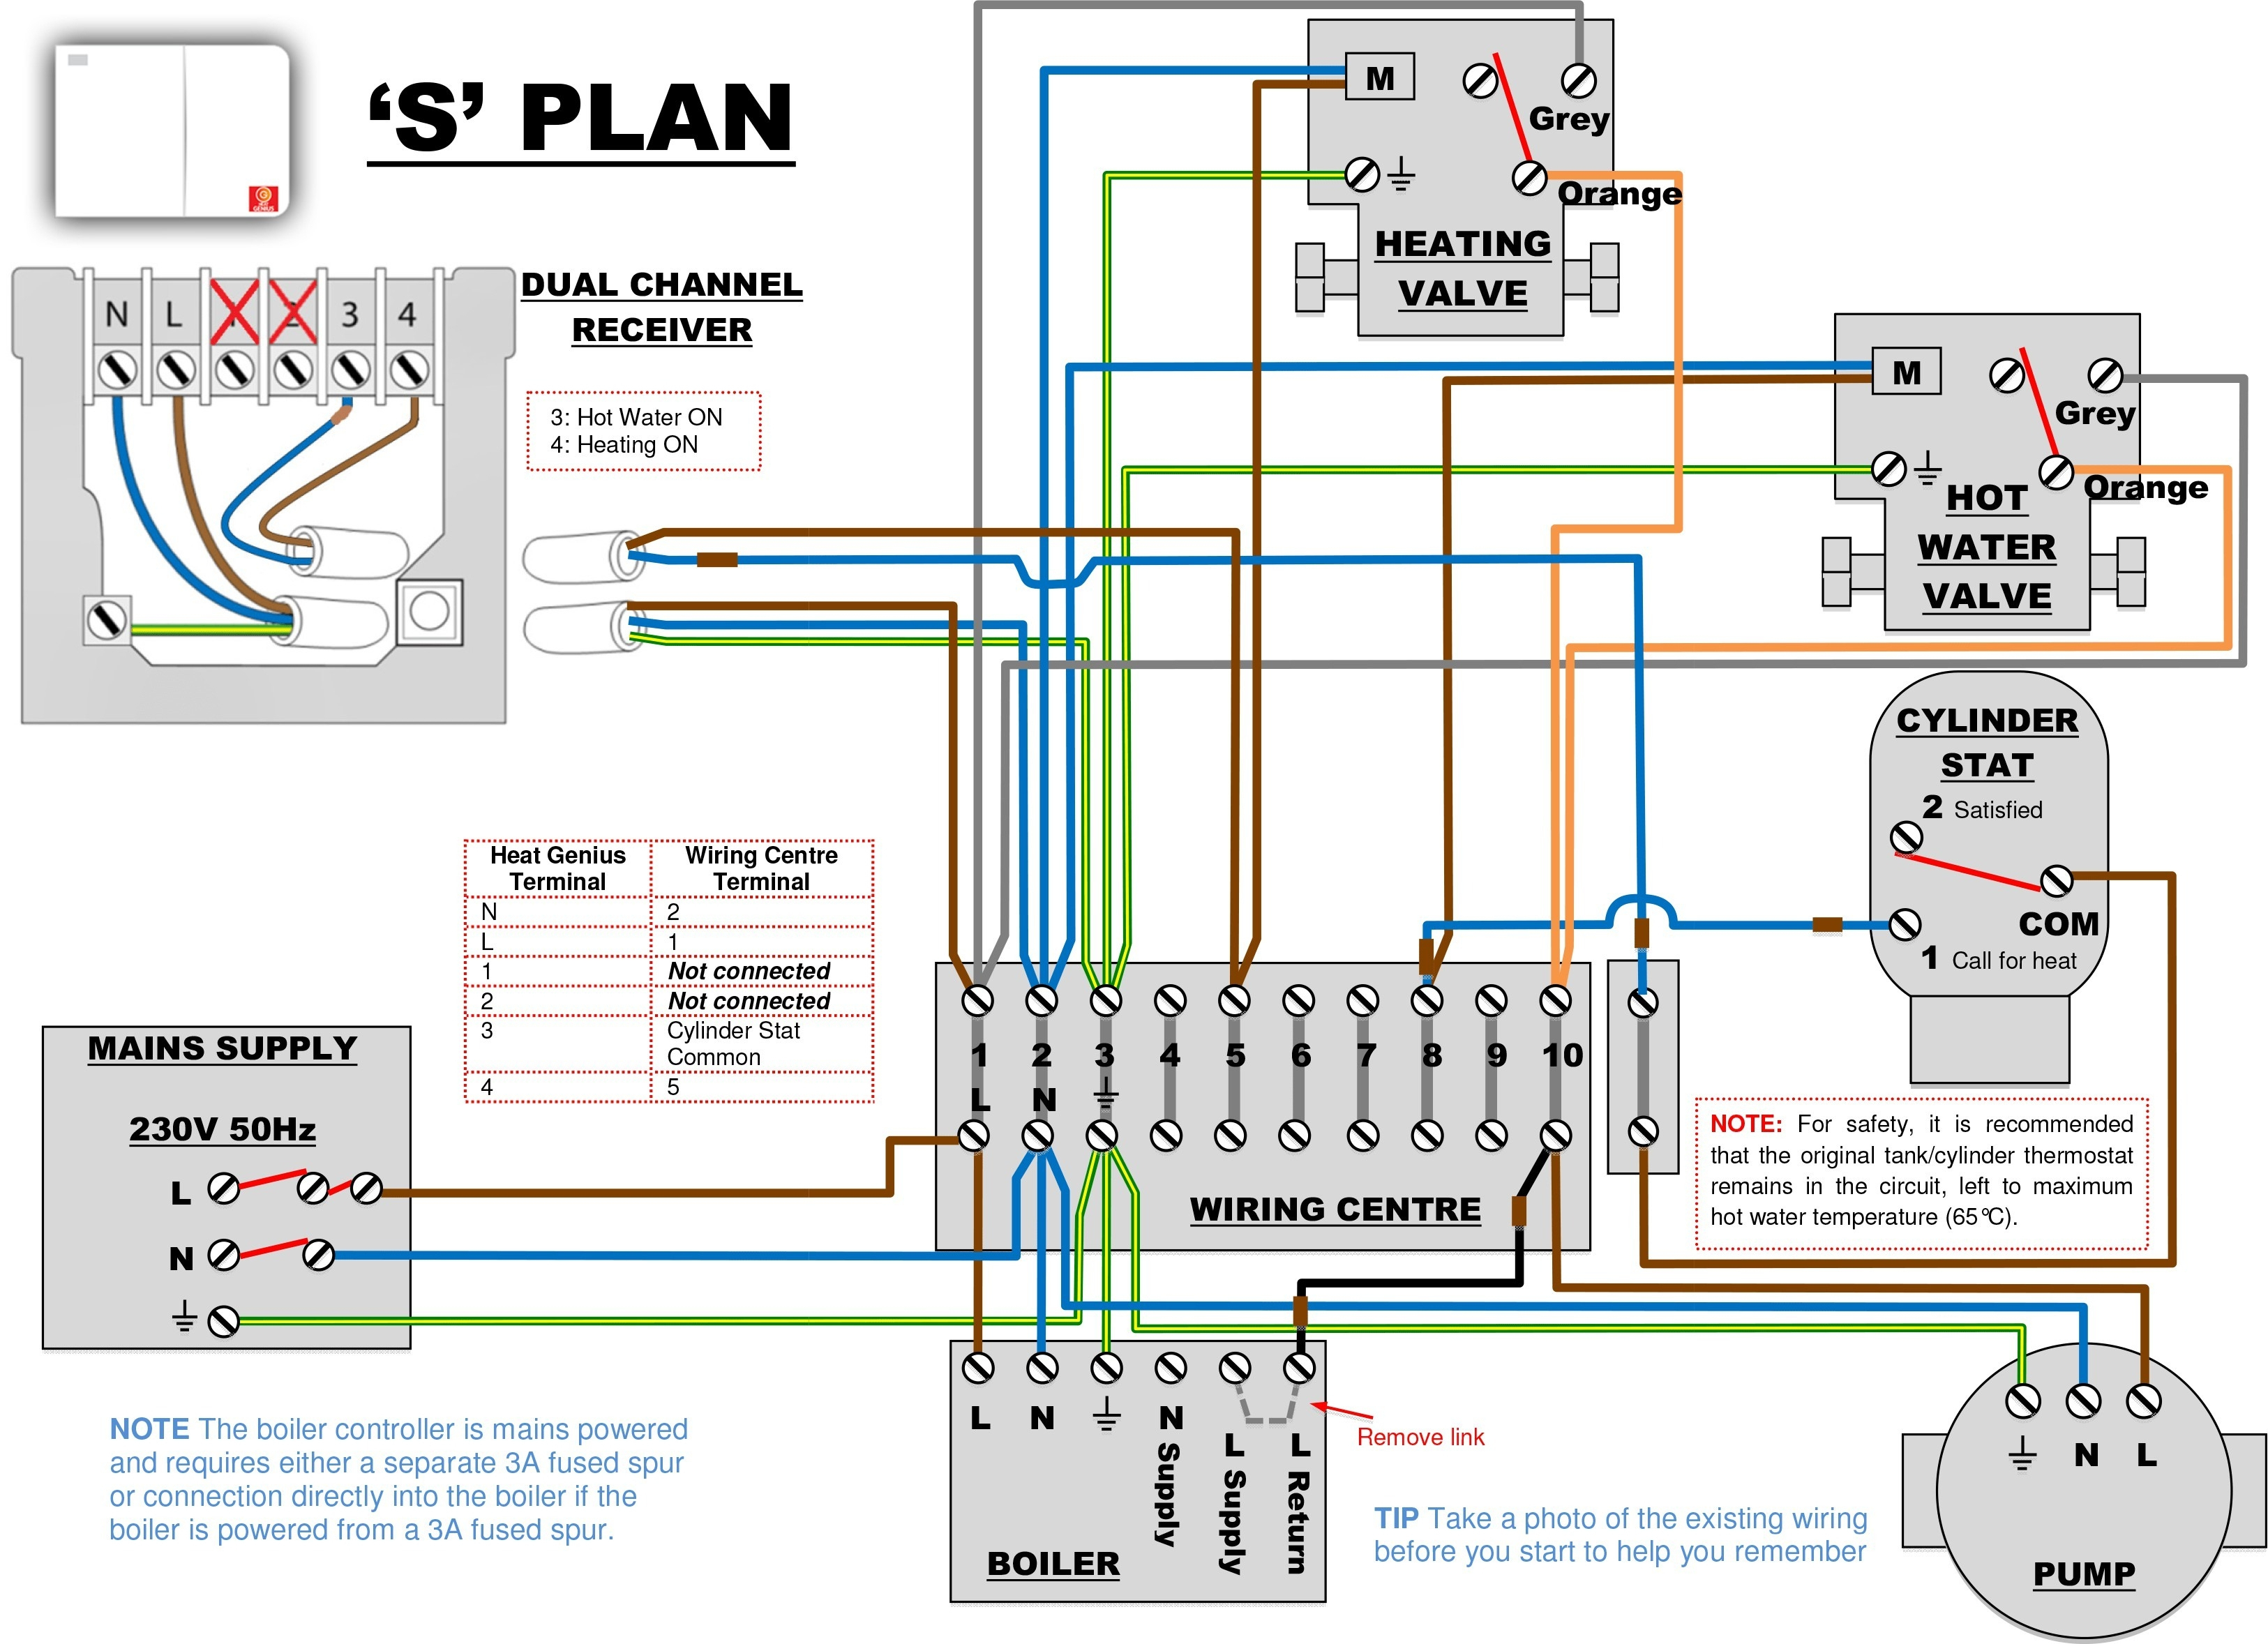 Nest Thermostat Wiring Diagram For Carrier Infinity - Wiring - Nest Thermostate Wiring Diagram